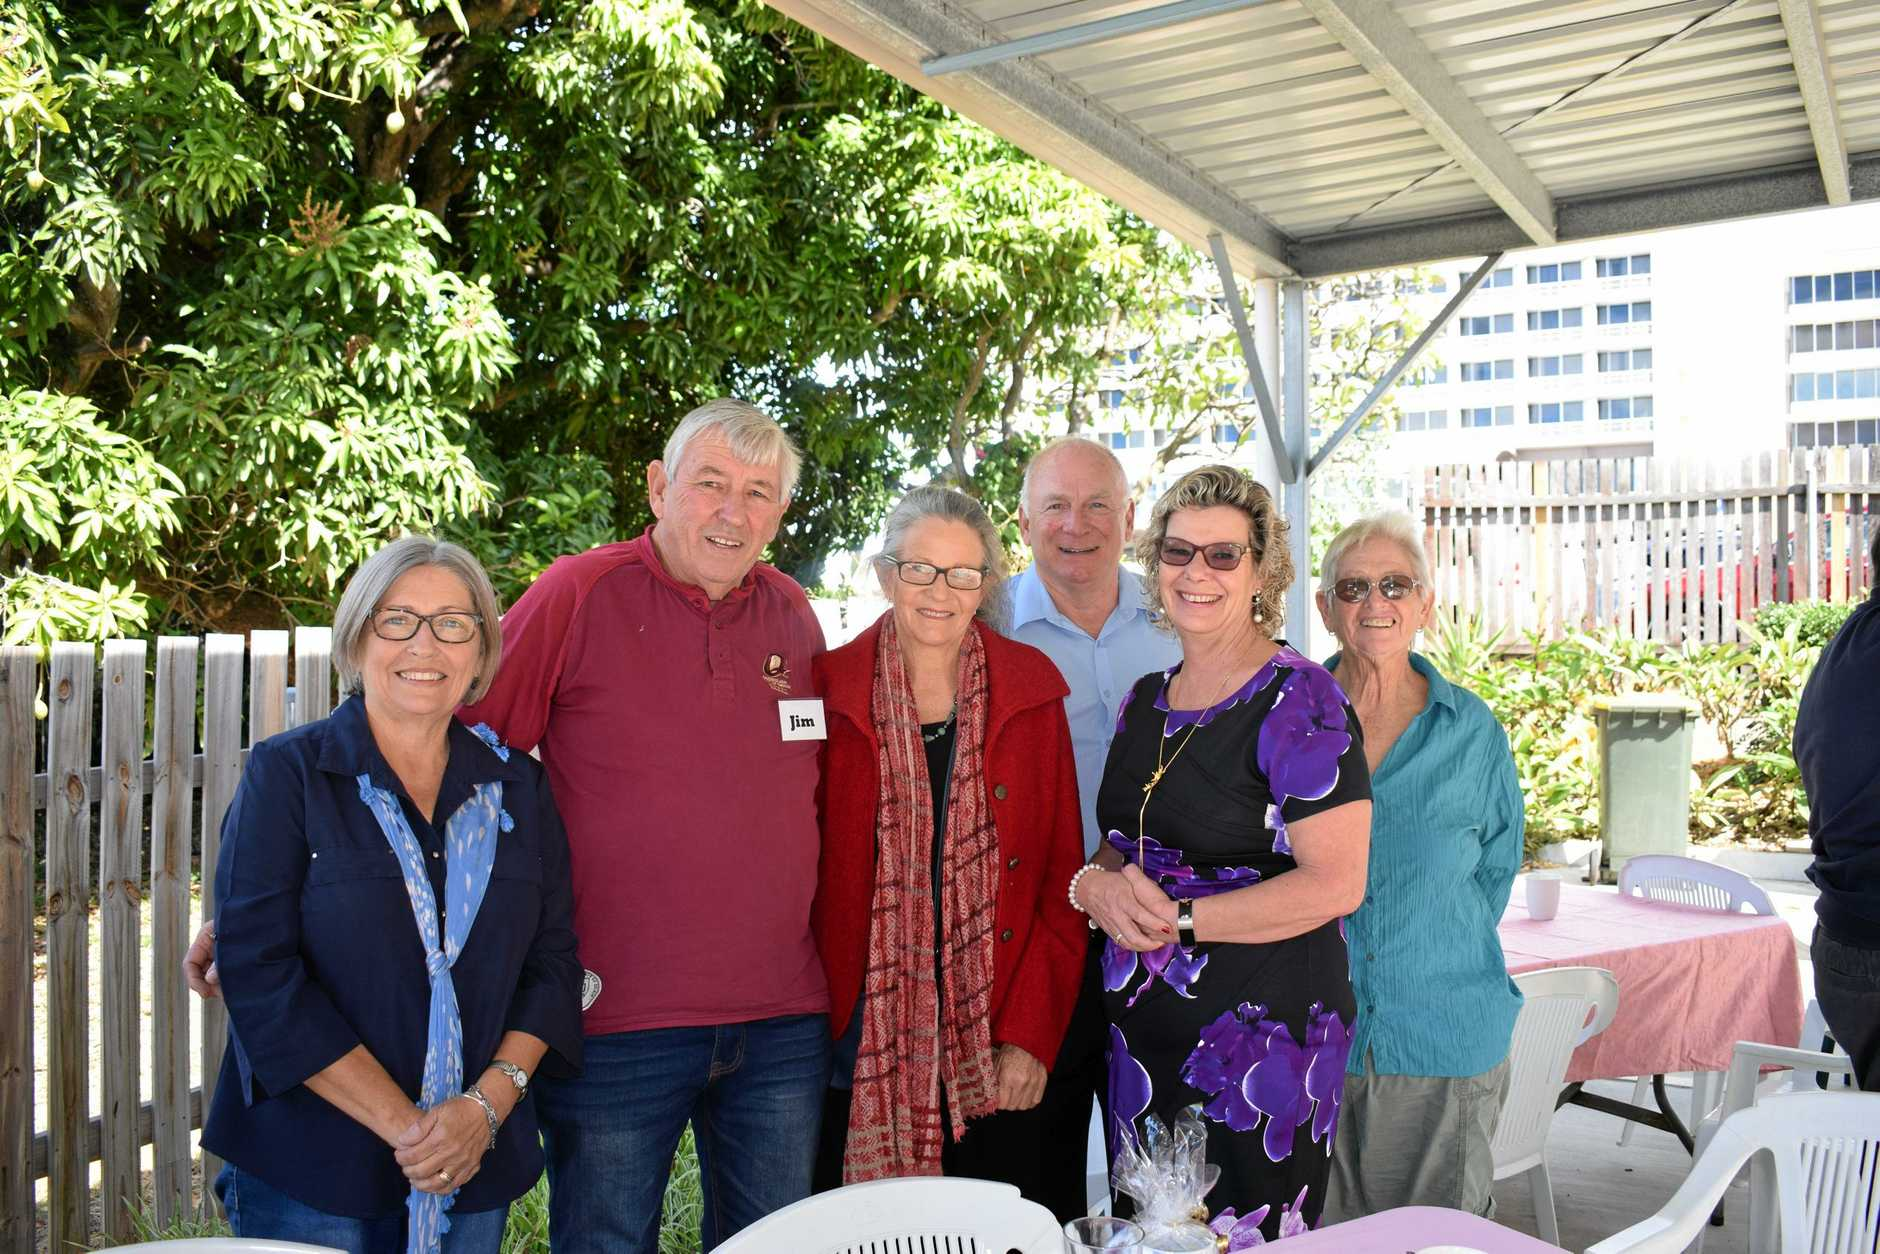 MORNING TEA: Debra Larkin, Jim Melling, Kerry Evans, Dave Walters, Philippa Walters and Jenny Cruikshank at Triumph Financial Planning's 2019 Biggest Morning Tea for Cancer Council.